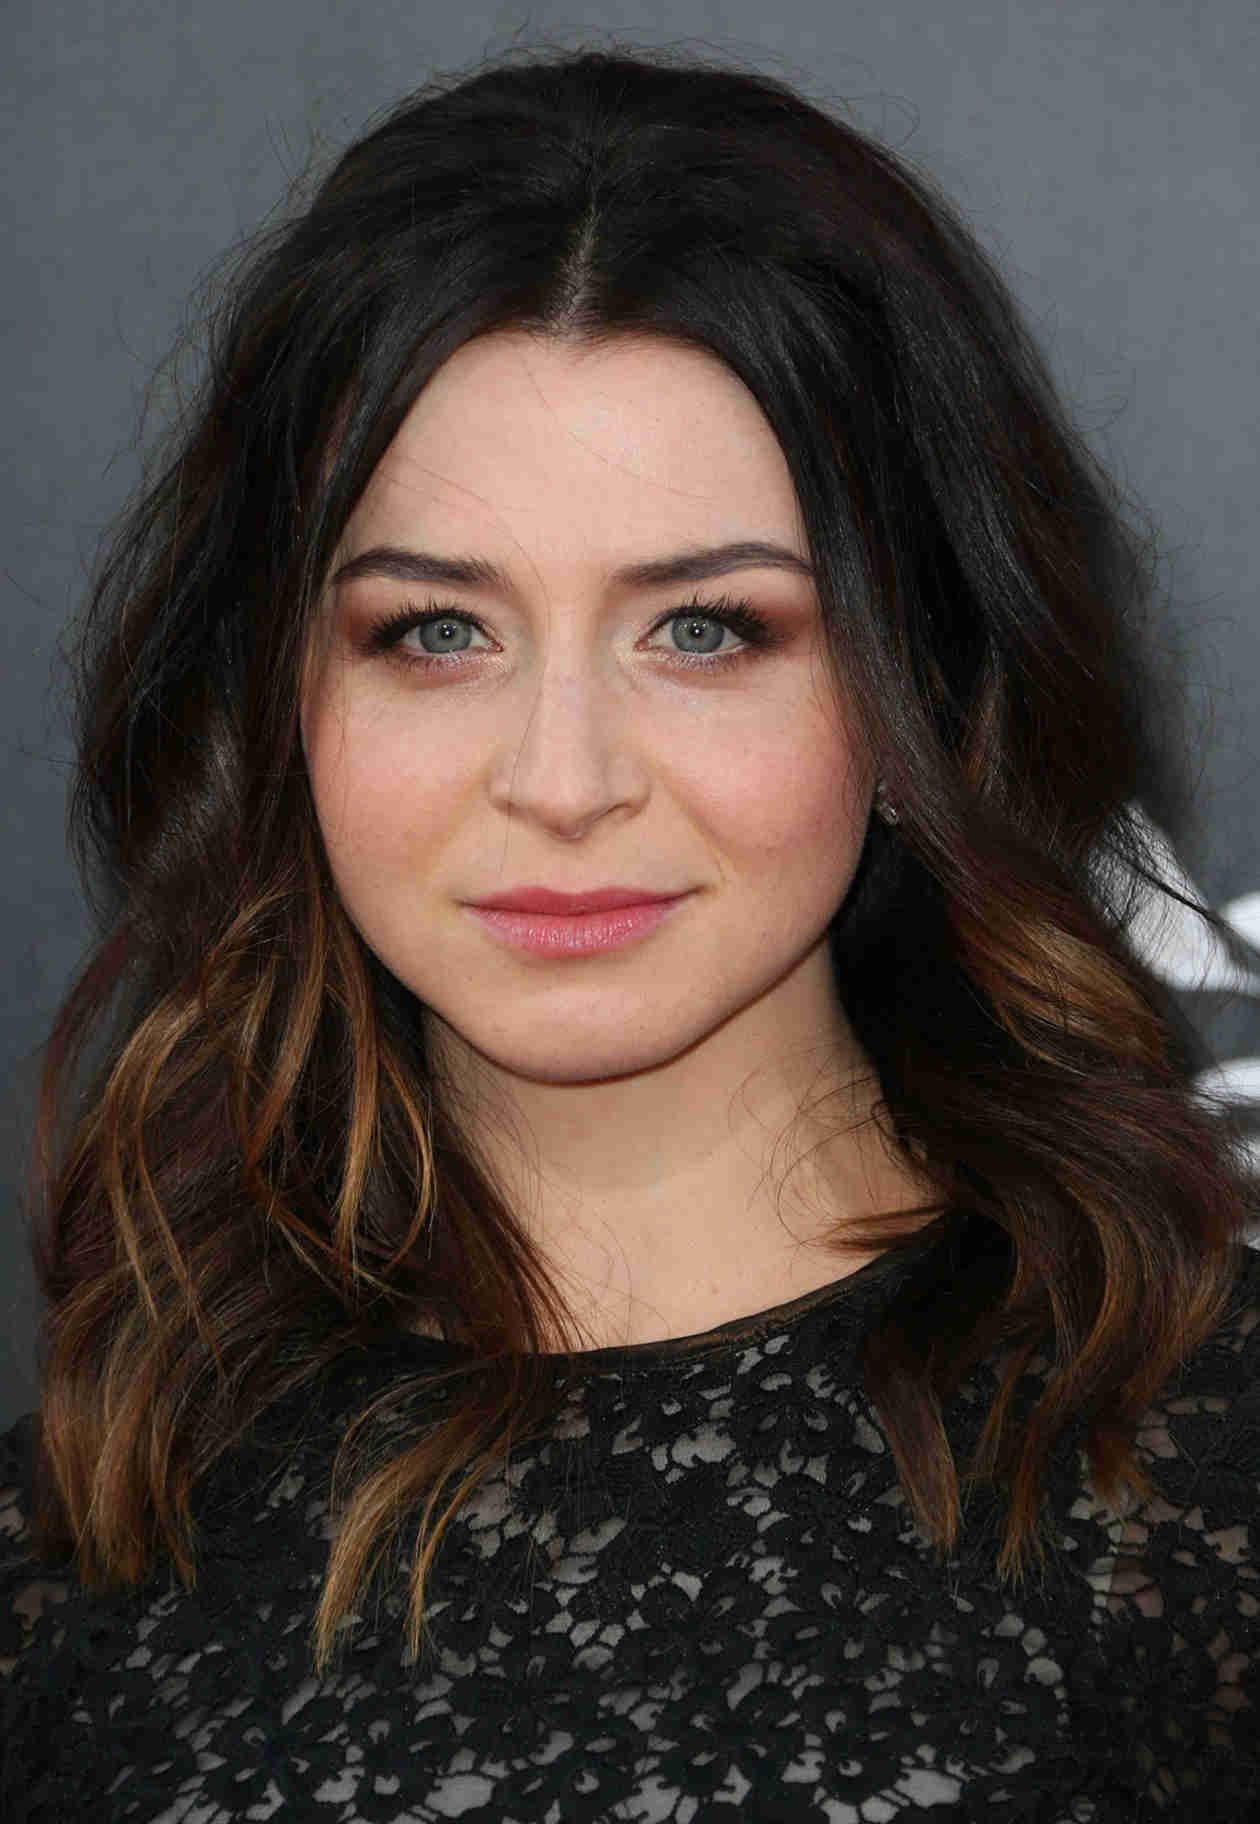 caterina scorsone website